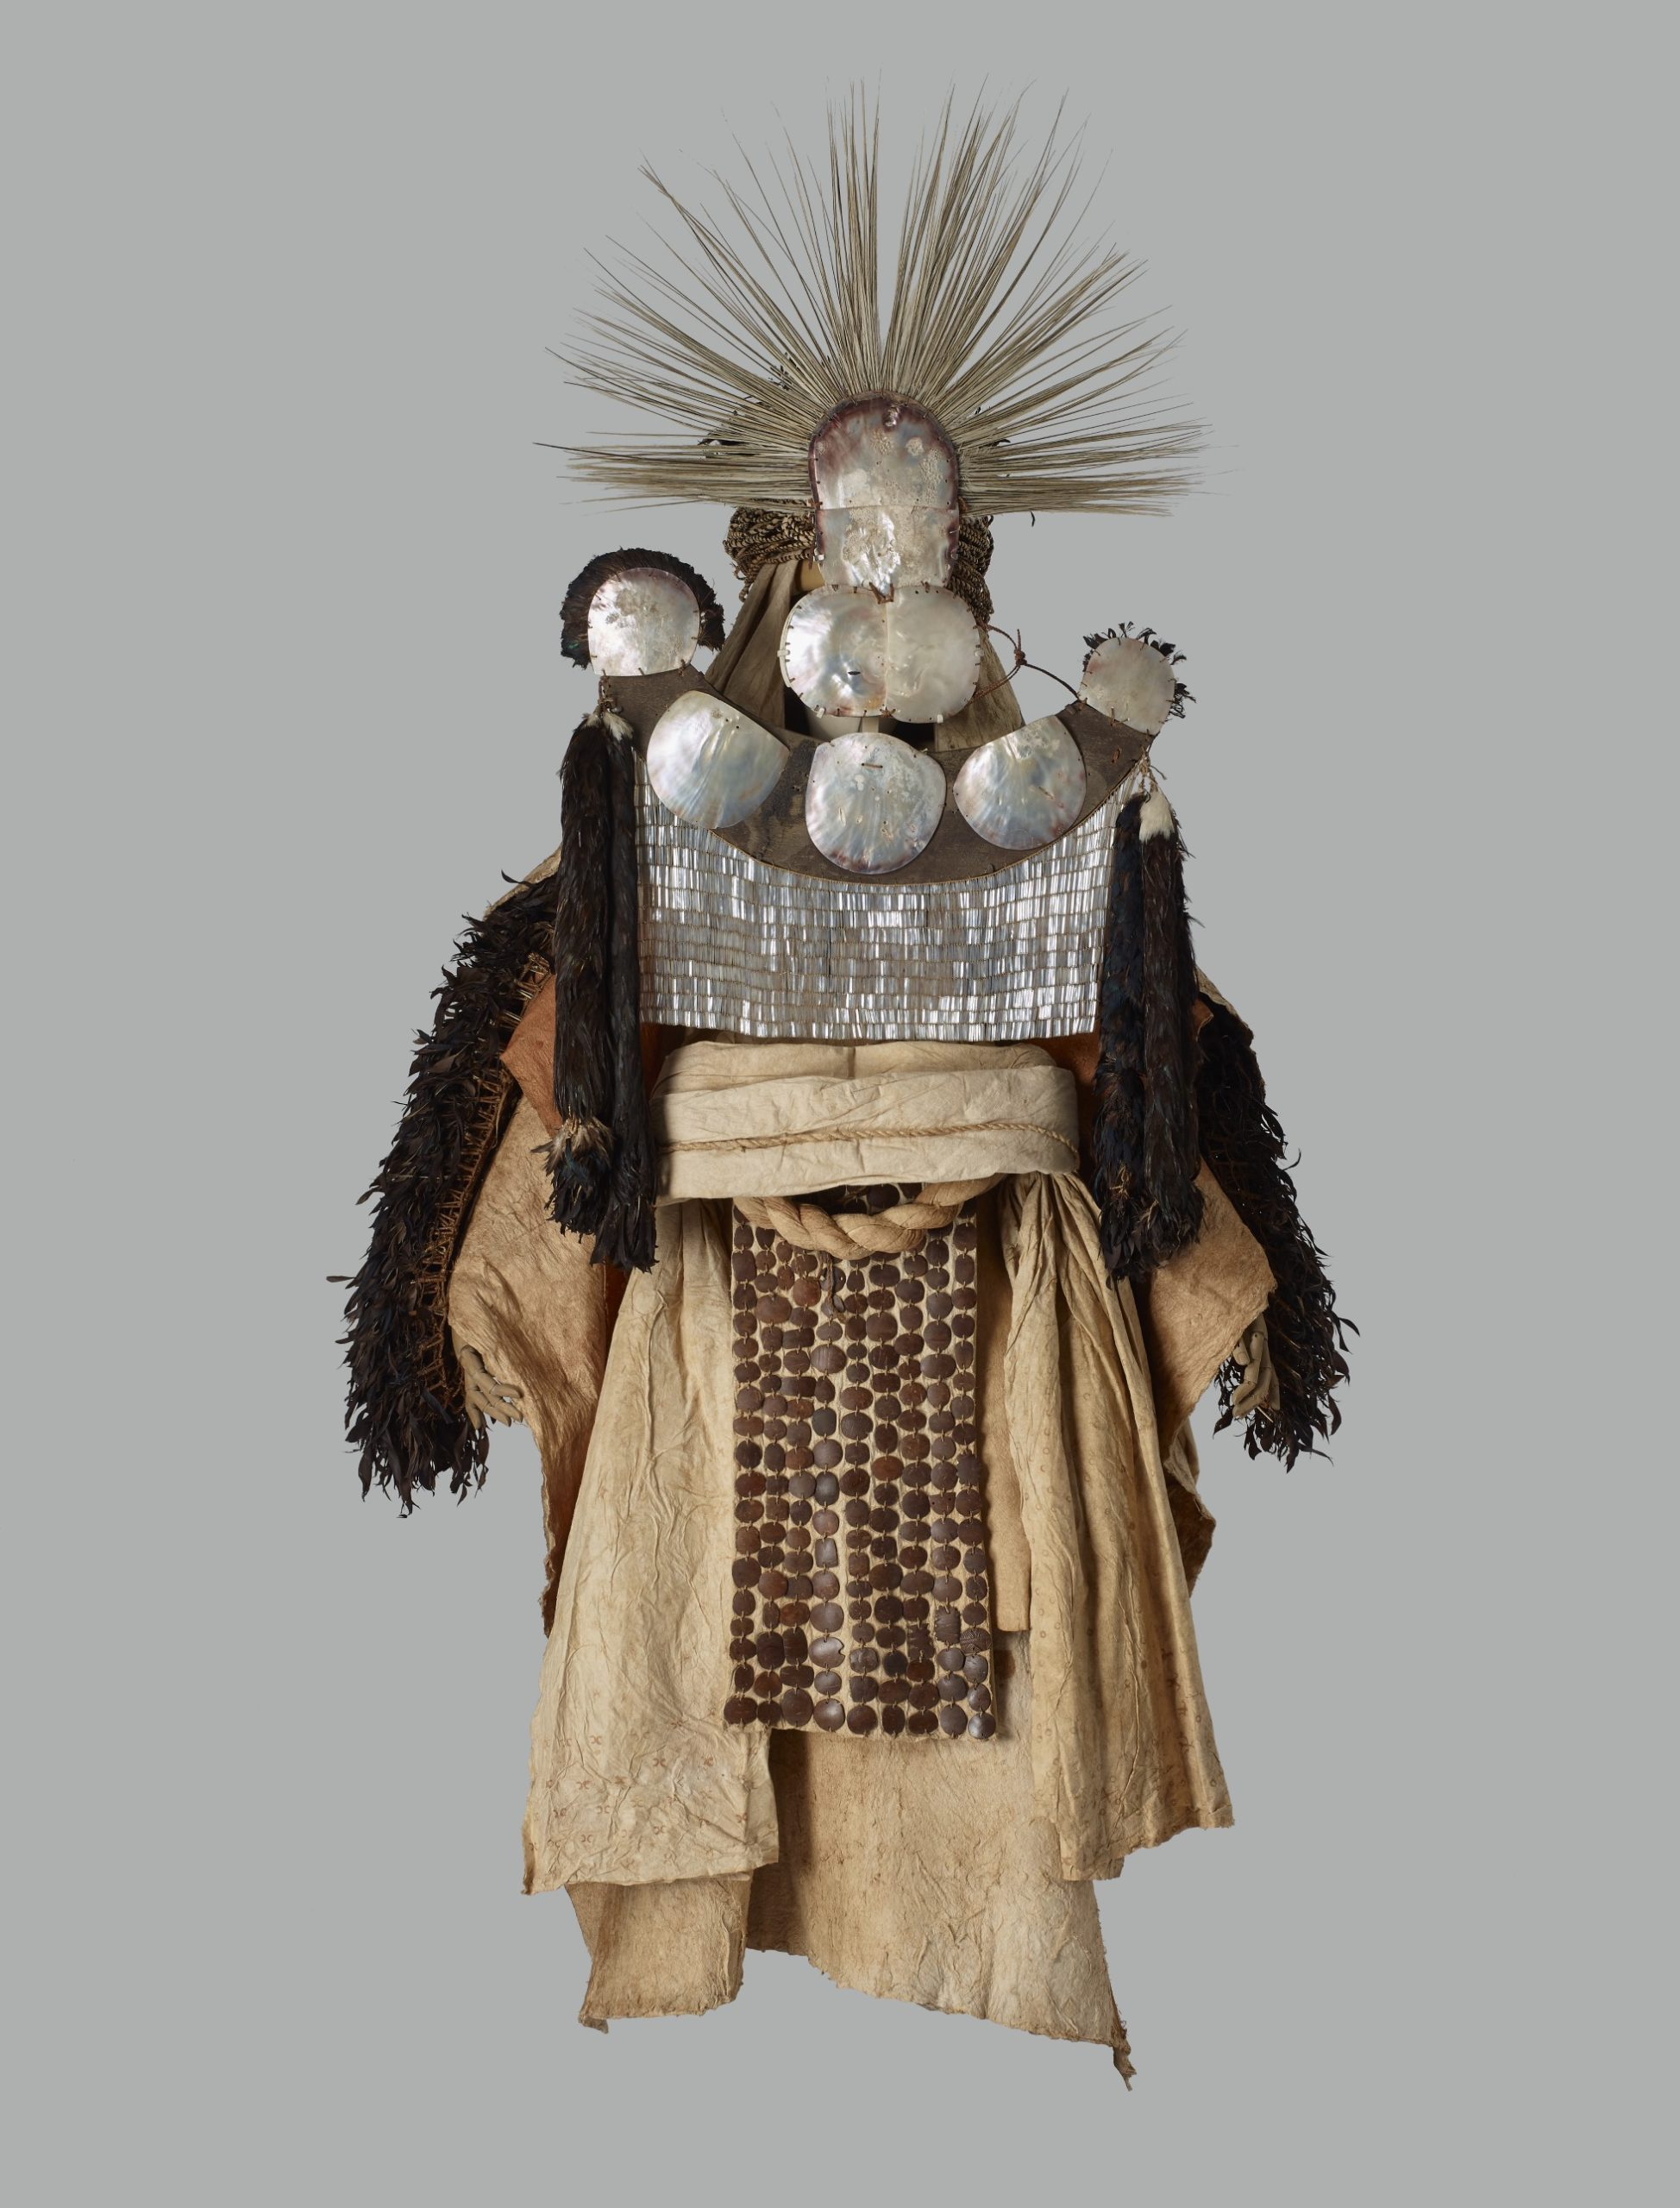 A photograph of the Tahitian mourner's costume, showing the pearl-shell and feather mask, feather cape, and barkcloth sheets.